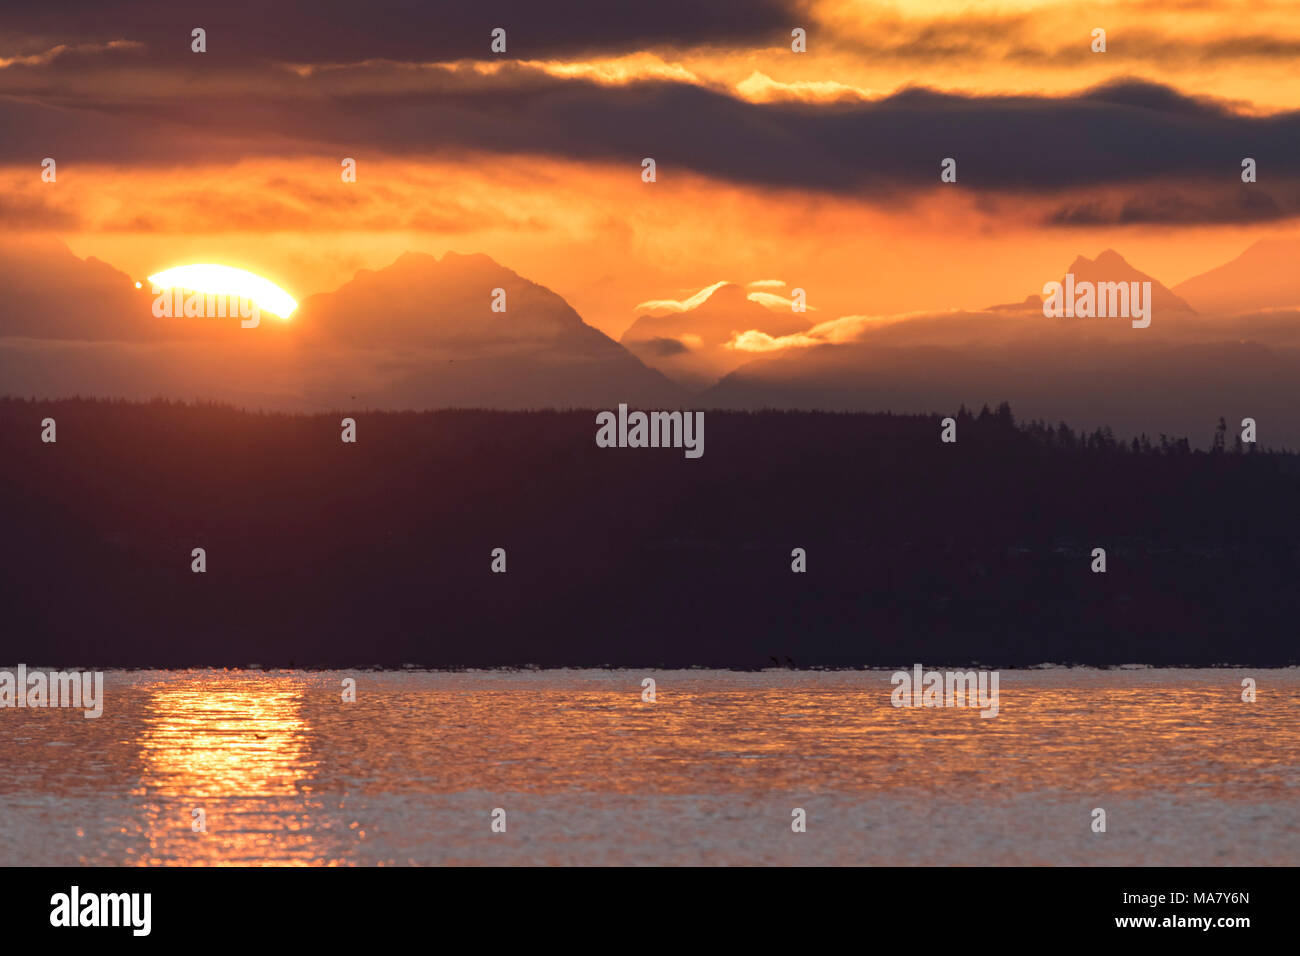 Sunrise, sun rise, over mountains. Sunset mountains panoramic. Colorful and scenic sunrise over the Cascade Mountains. From Port Townsend. - Stock Image